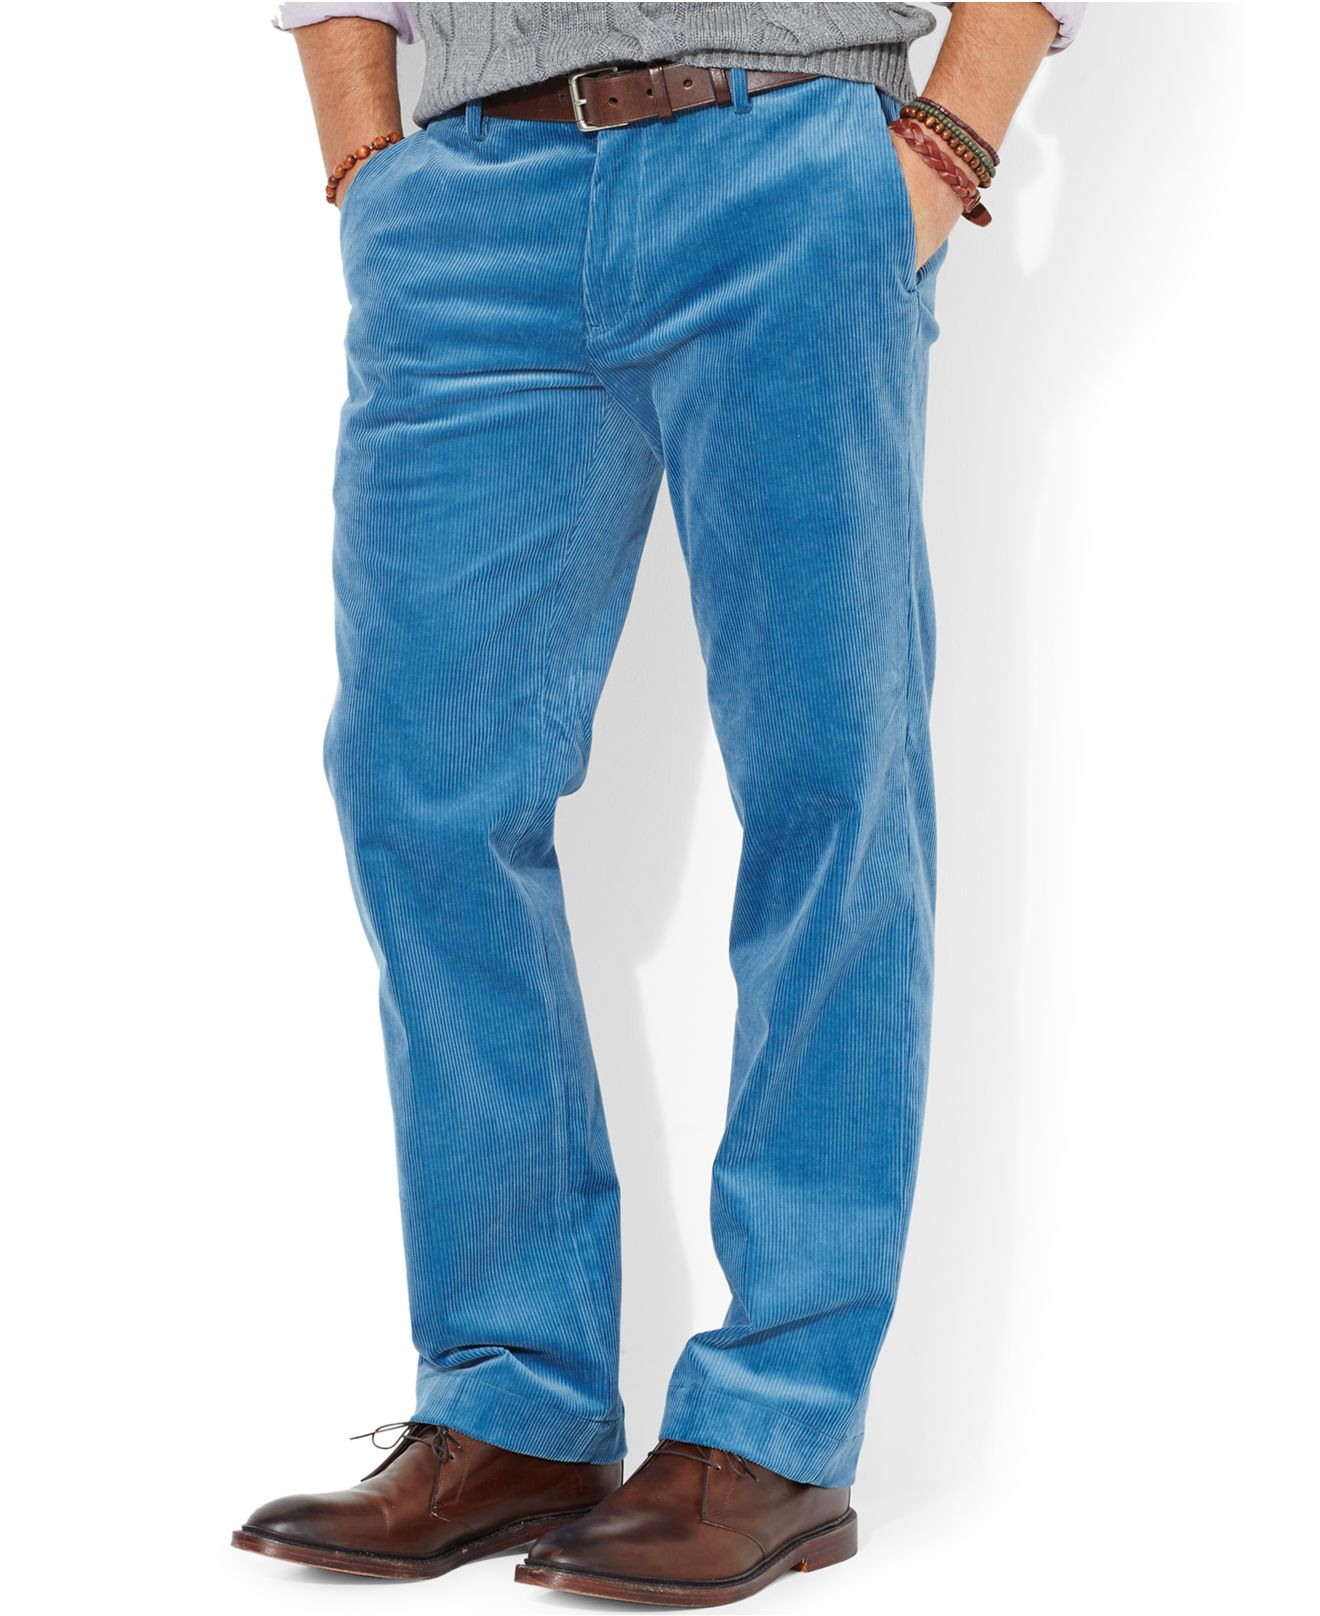 Corduroy Pants for Men are a timeless addition for any wardrobe! We have all the brands you want, including men's Croft & Barrow corduroy pants. We also have all the colors of pants you need to coordinate with other outfit options, like men's blue corduroy pants and men's brown corduroy pants.